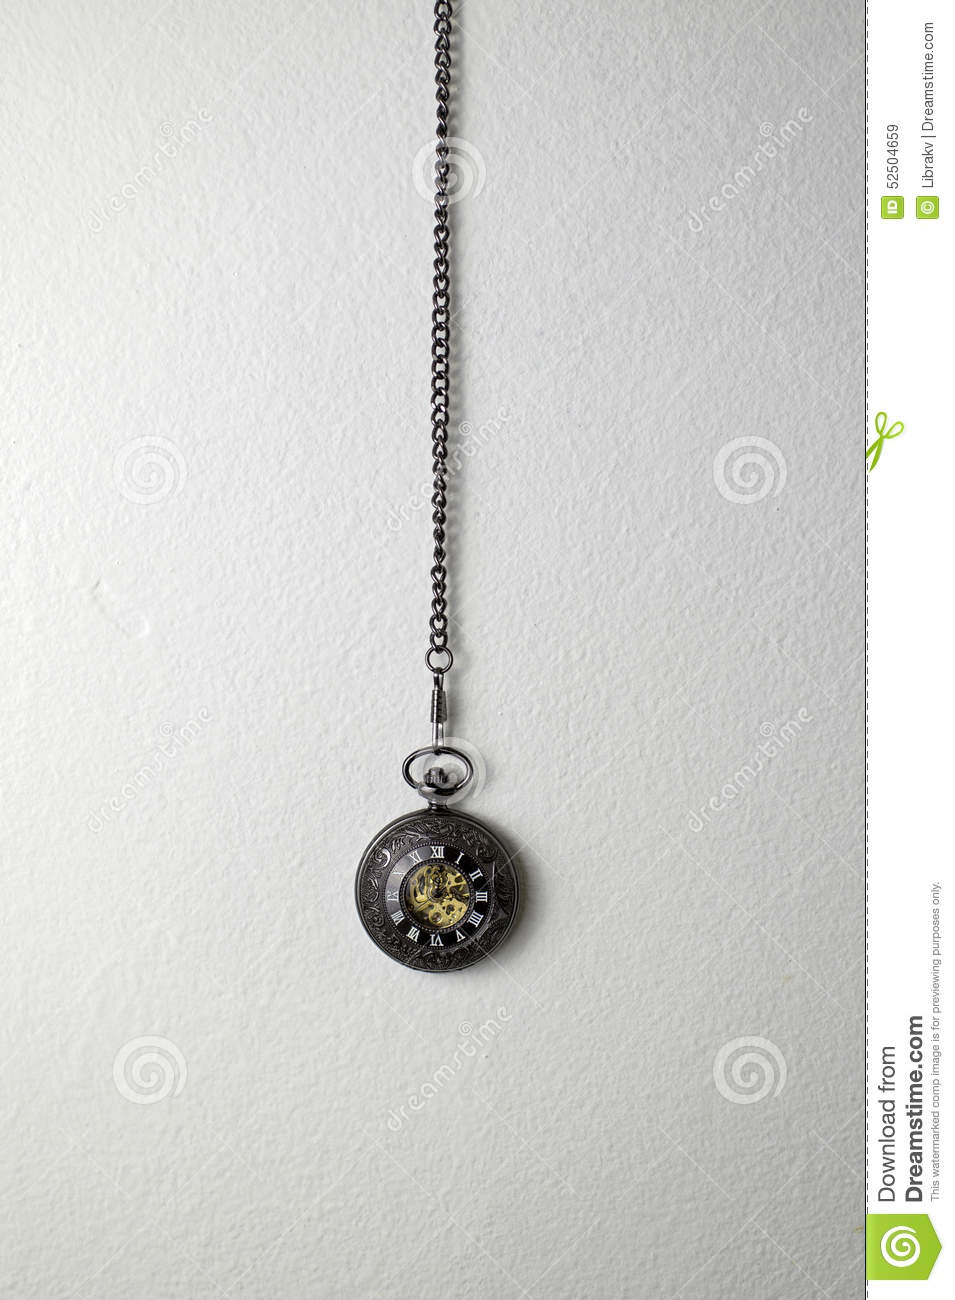 Old Pocket Watch Hanging On The Wall Stock Image - Image ...